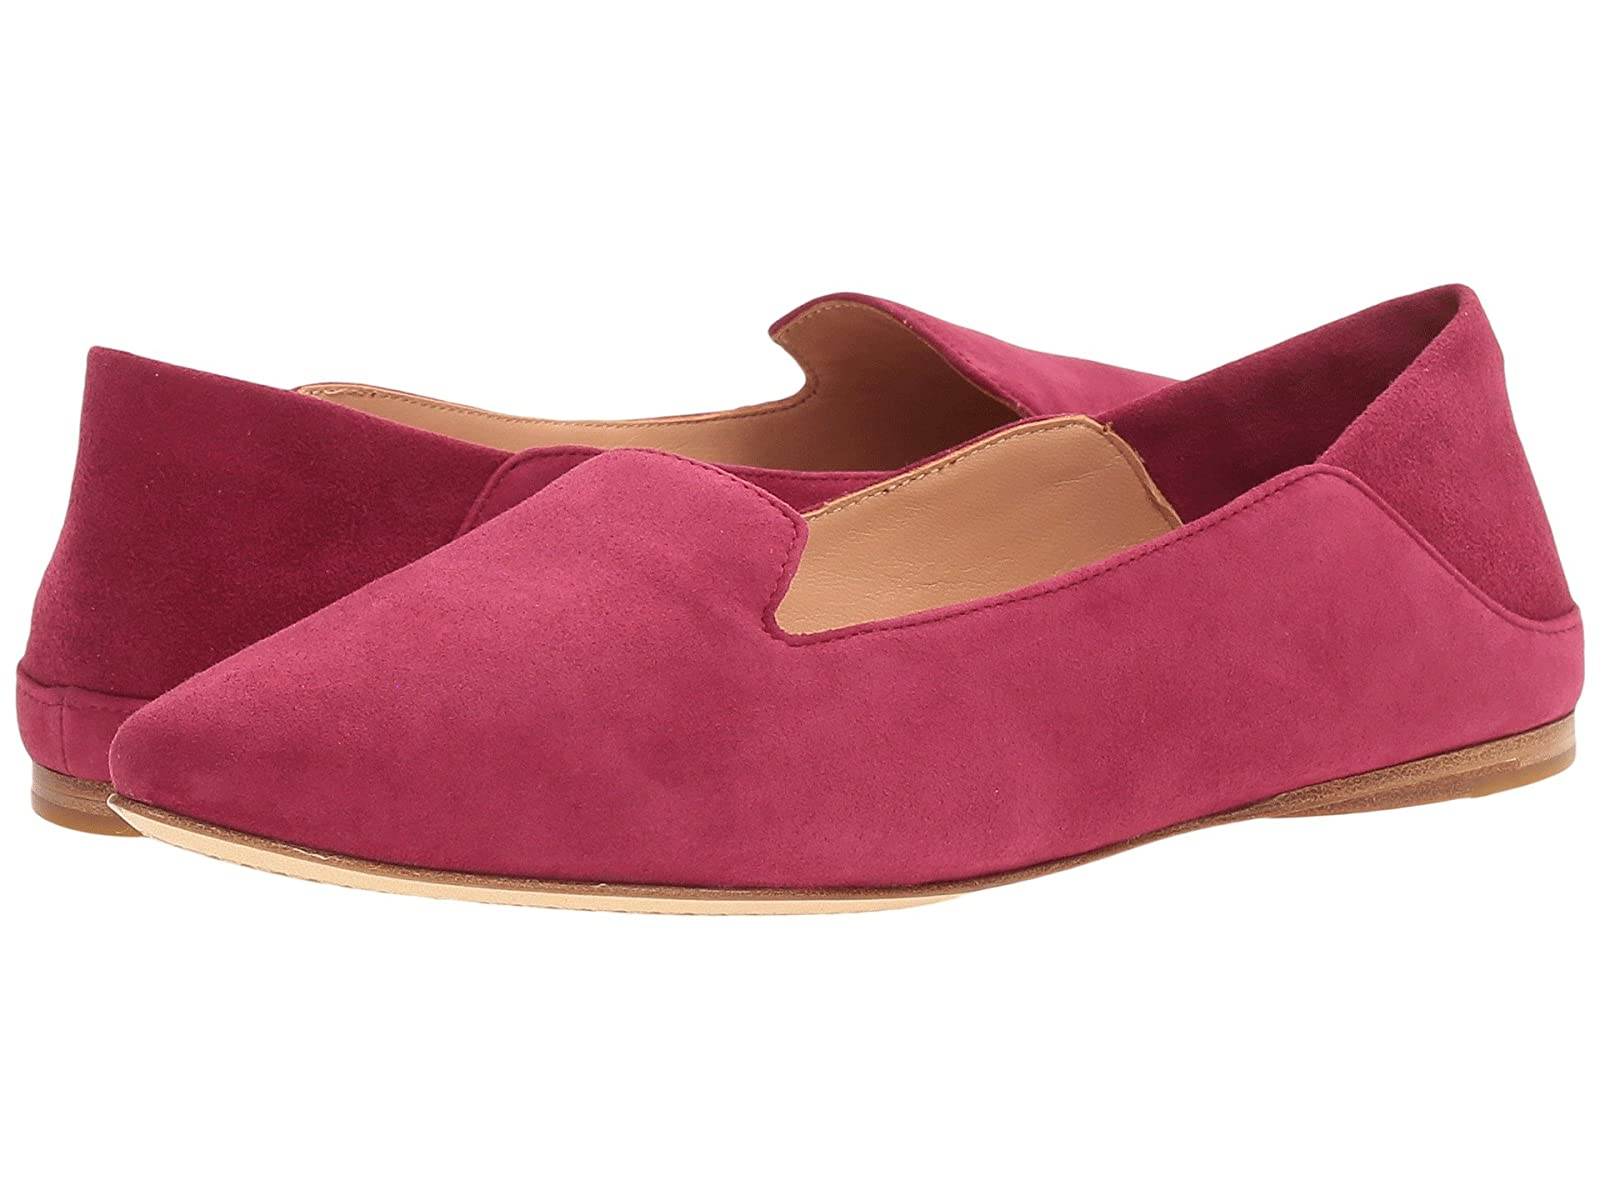 Sigerson Morrison ValentineCheap and distinctive eye-catching shoes